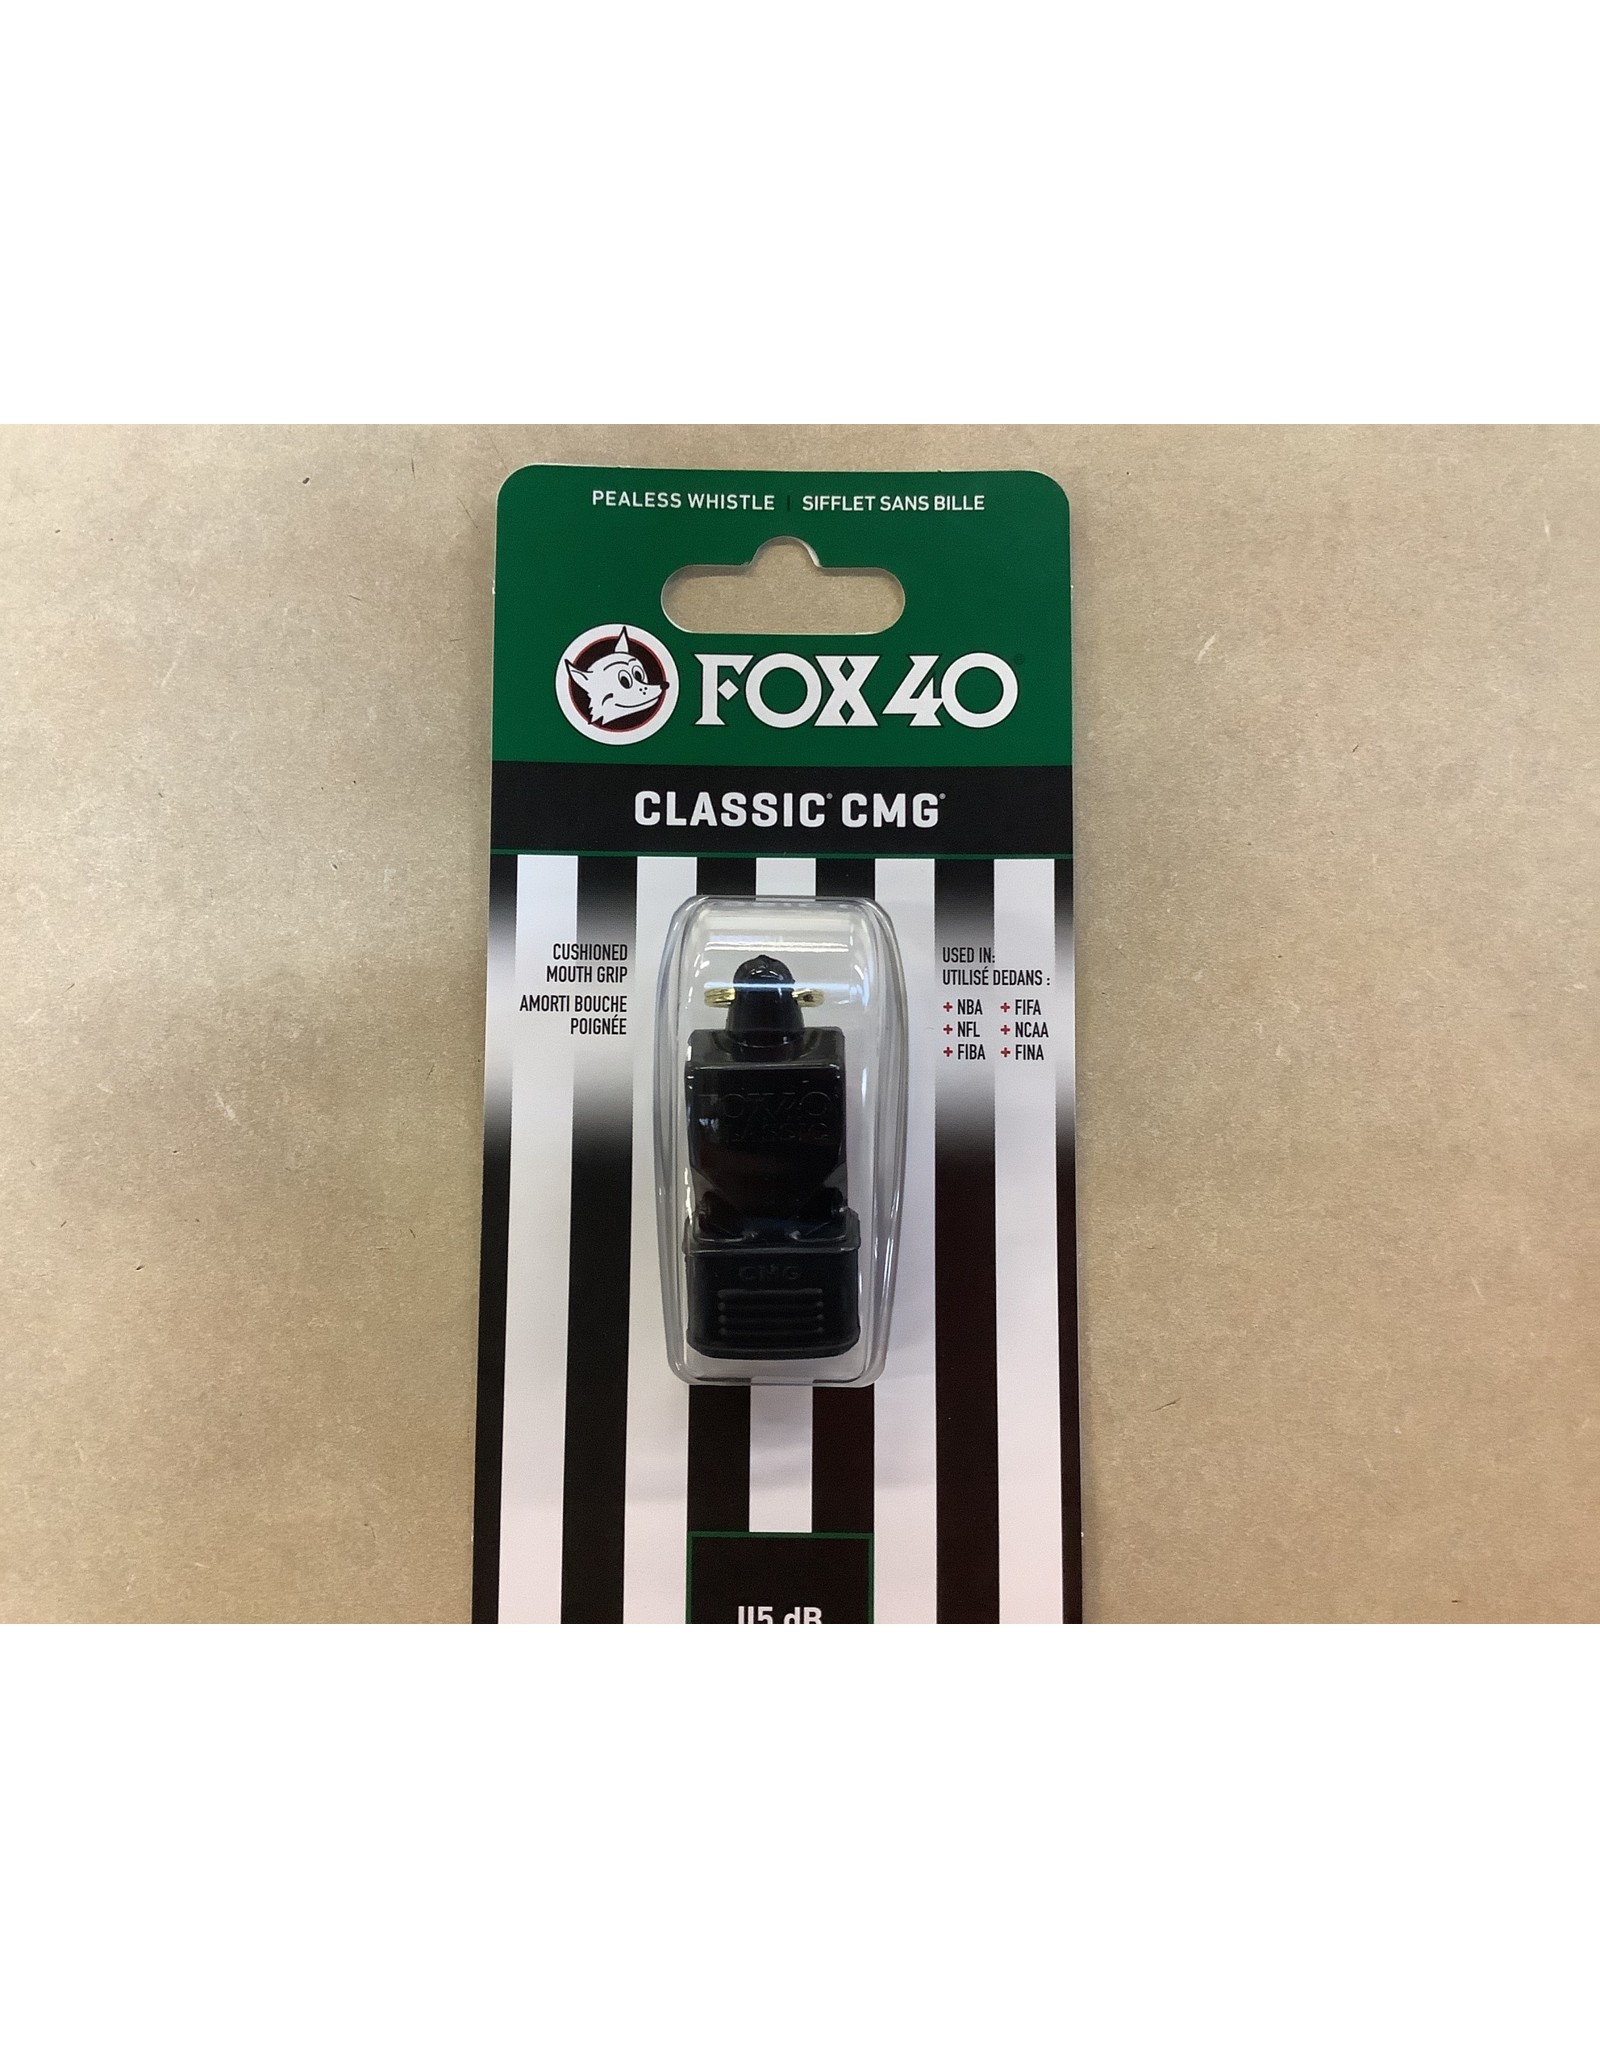 Fox 40 Fox 40 Classic CMG Official Whistle Plastic